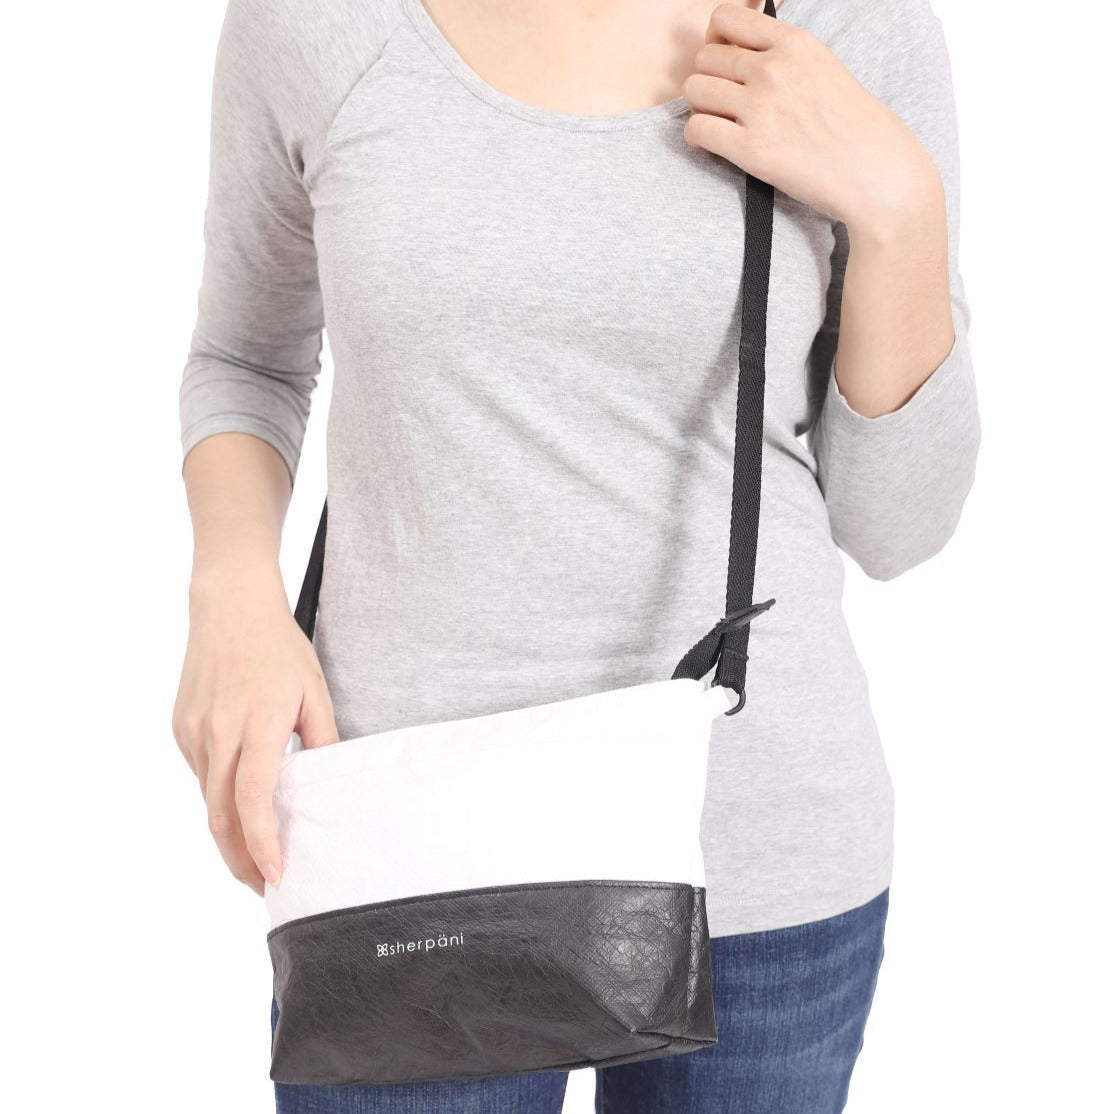 Black & White Convertible Mini Crossbody and Wristlet (as crossbody bag) made with tyvek fabric